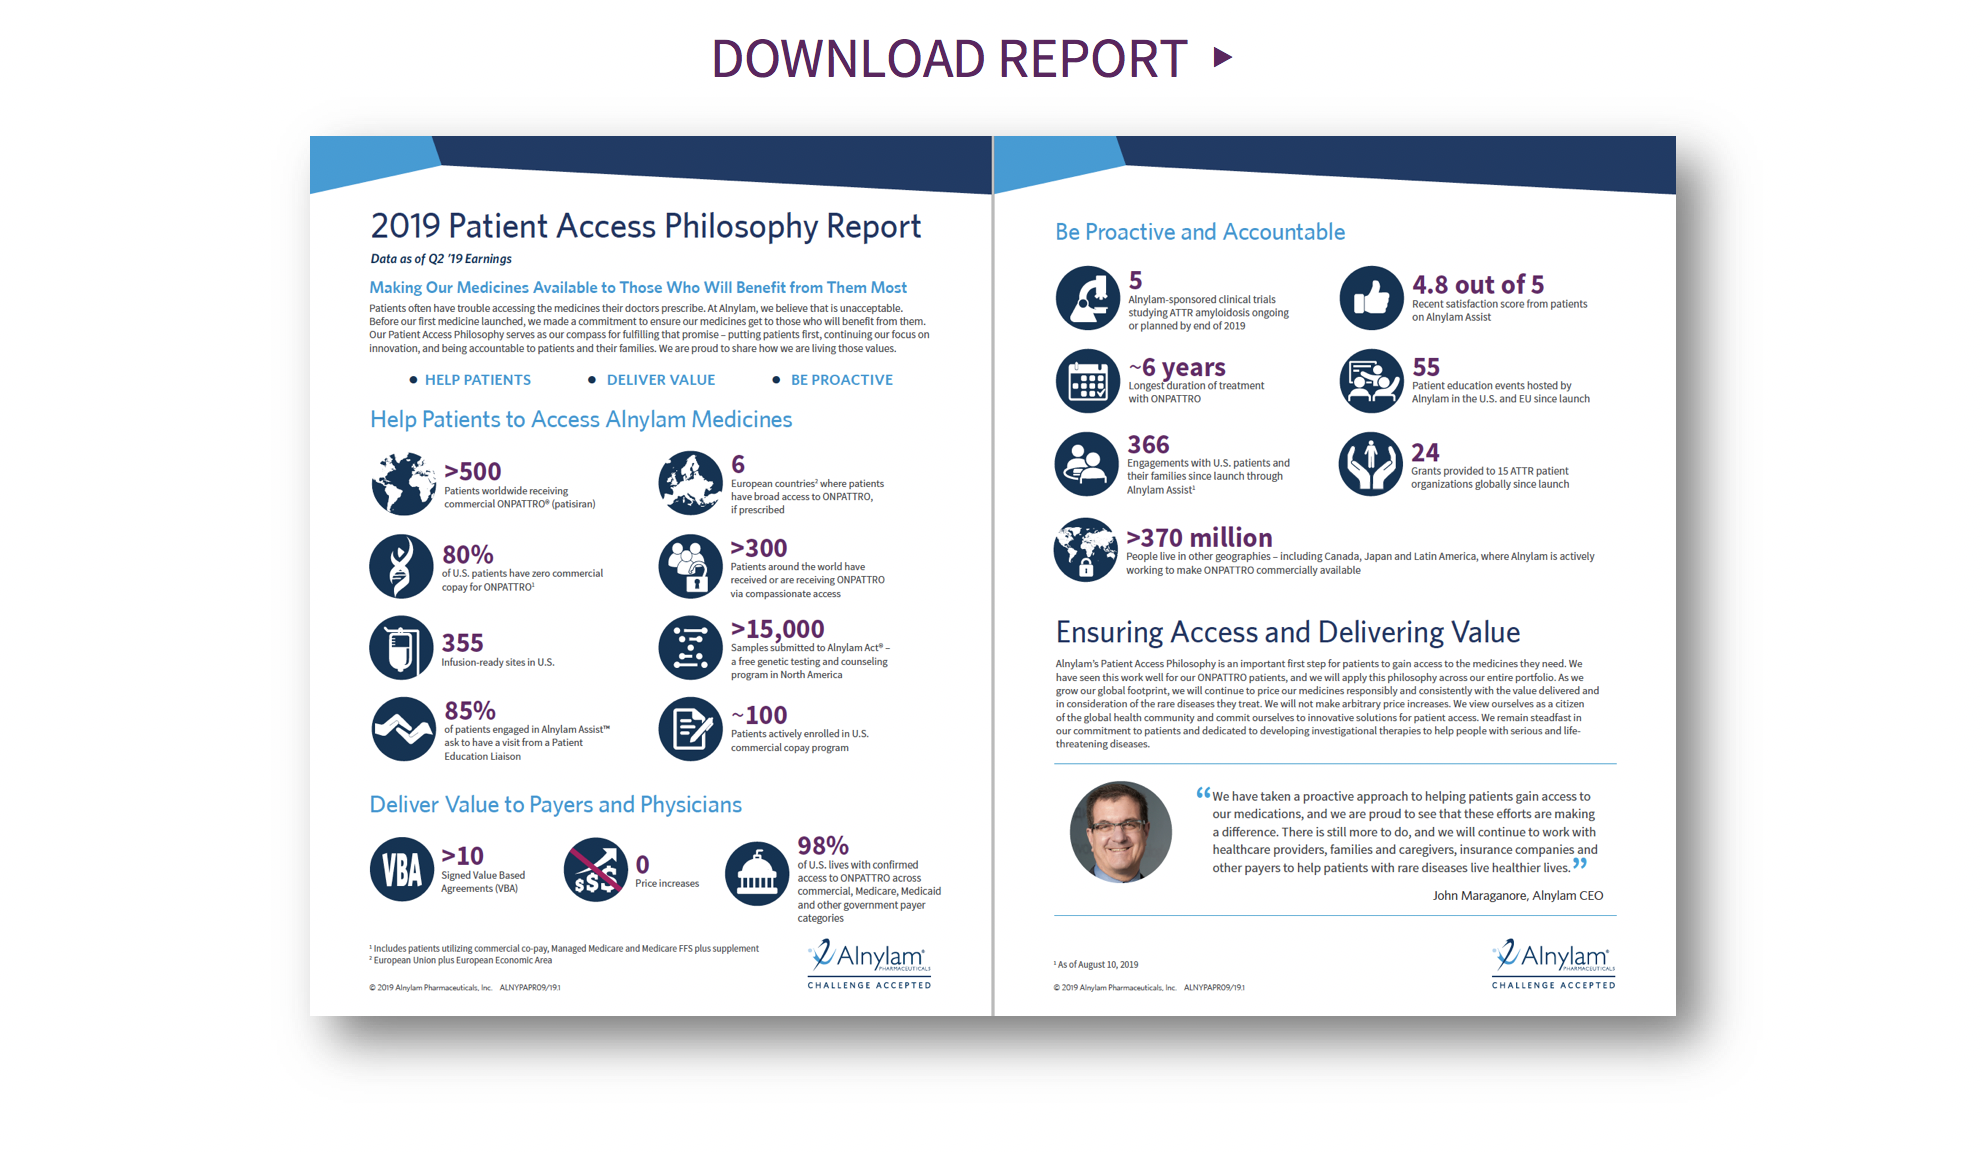 Alnylam 2019 Patient Access Philosophy Report Tumbnail